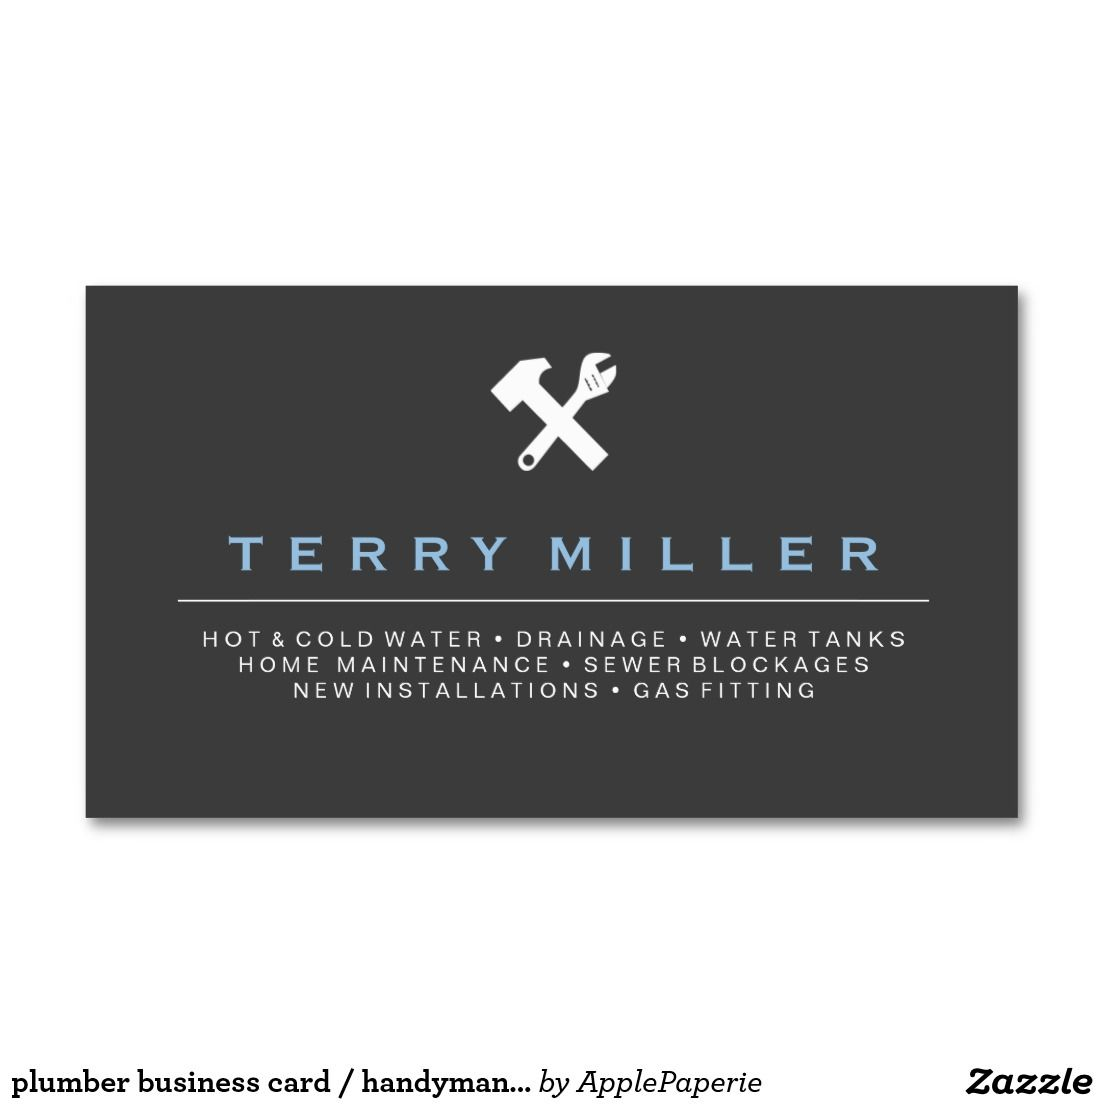 Plumber business card / handyman business cards | Pinterest ...